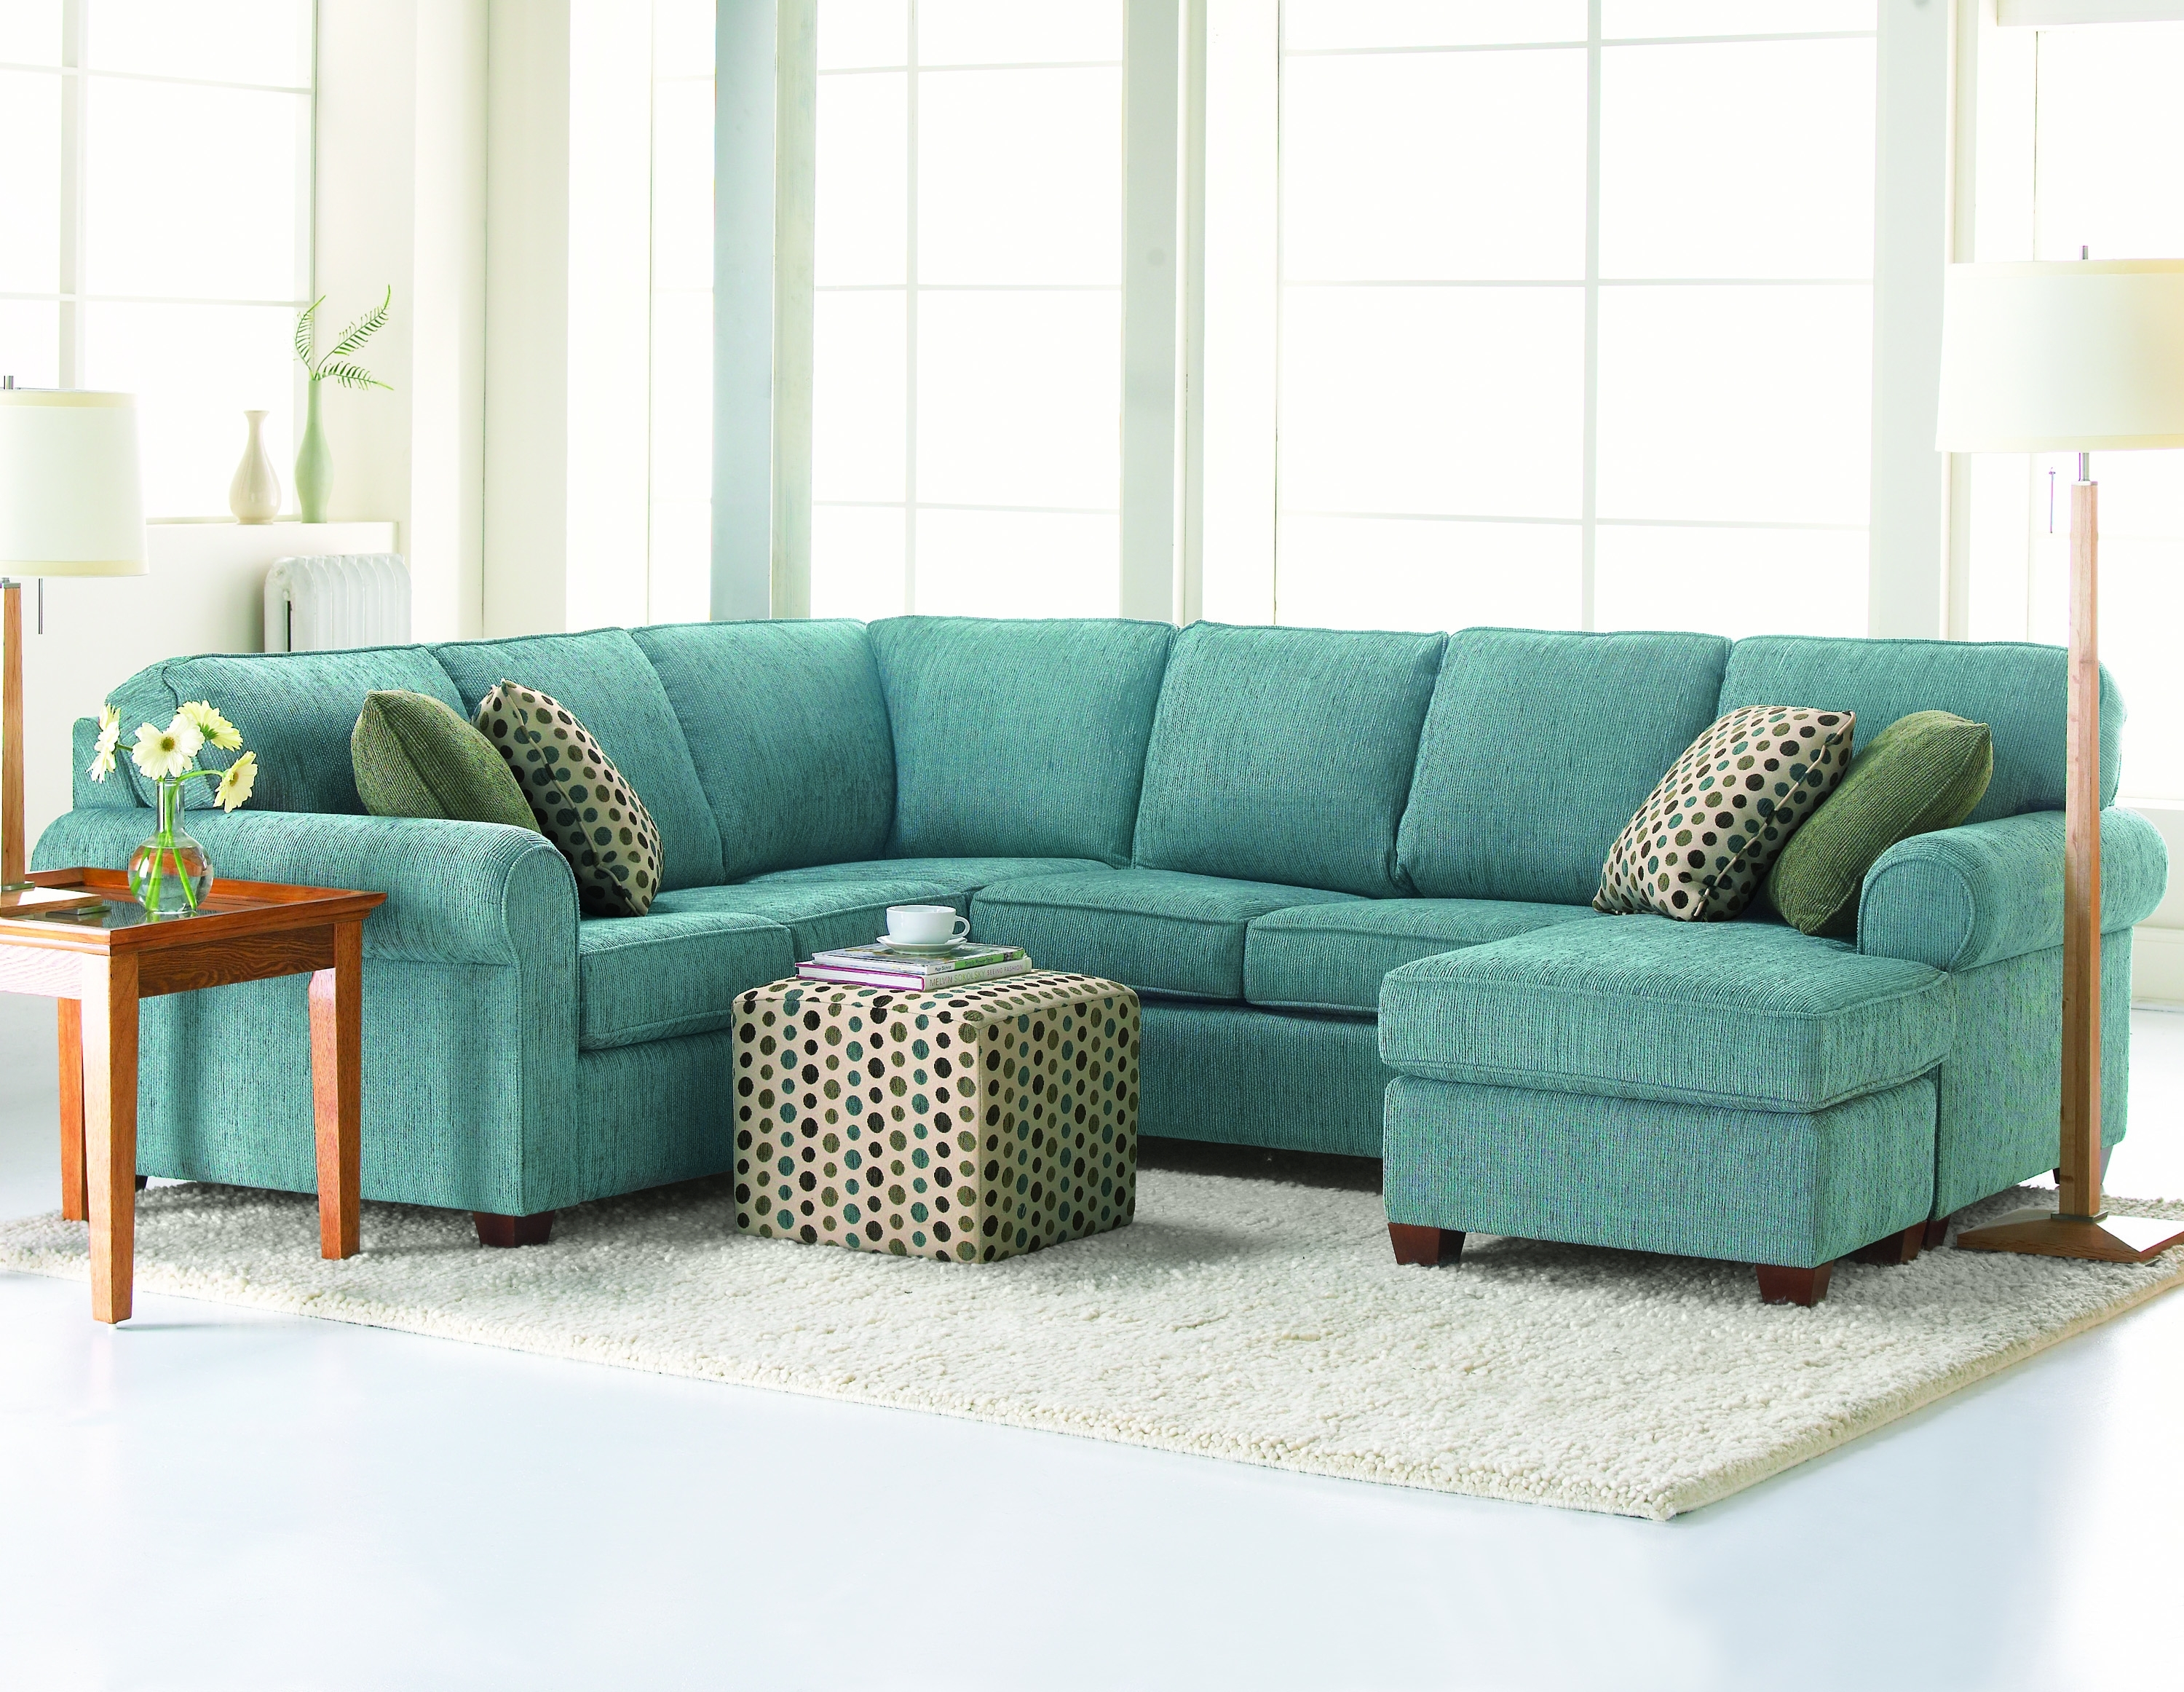 Sectional Sofas - Thompson Brothers Furniture within Ontario Canada Sectional Sofas (Image 9 of 10)